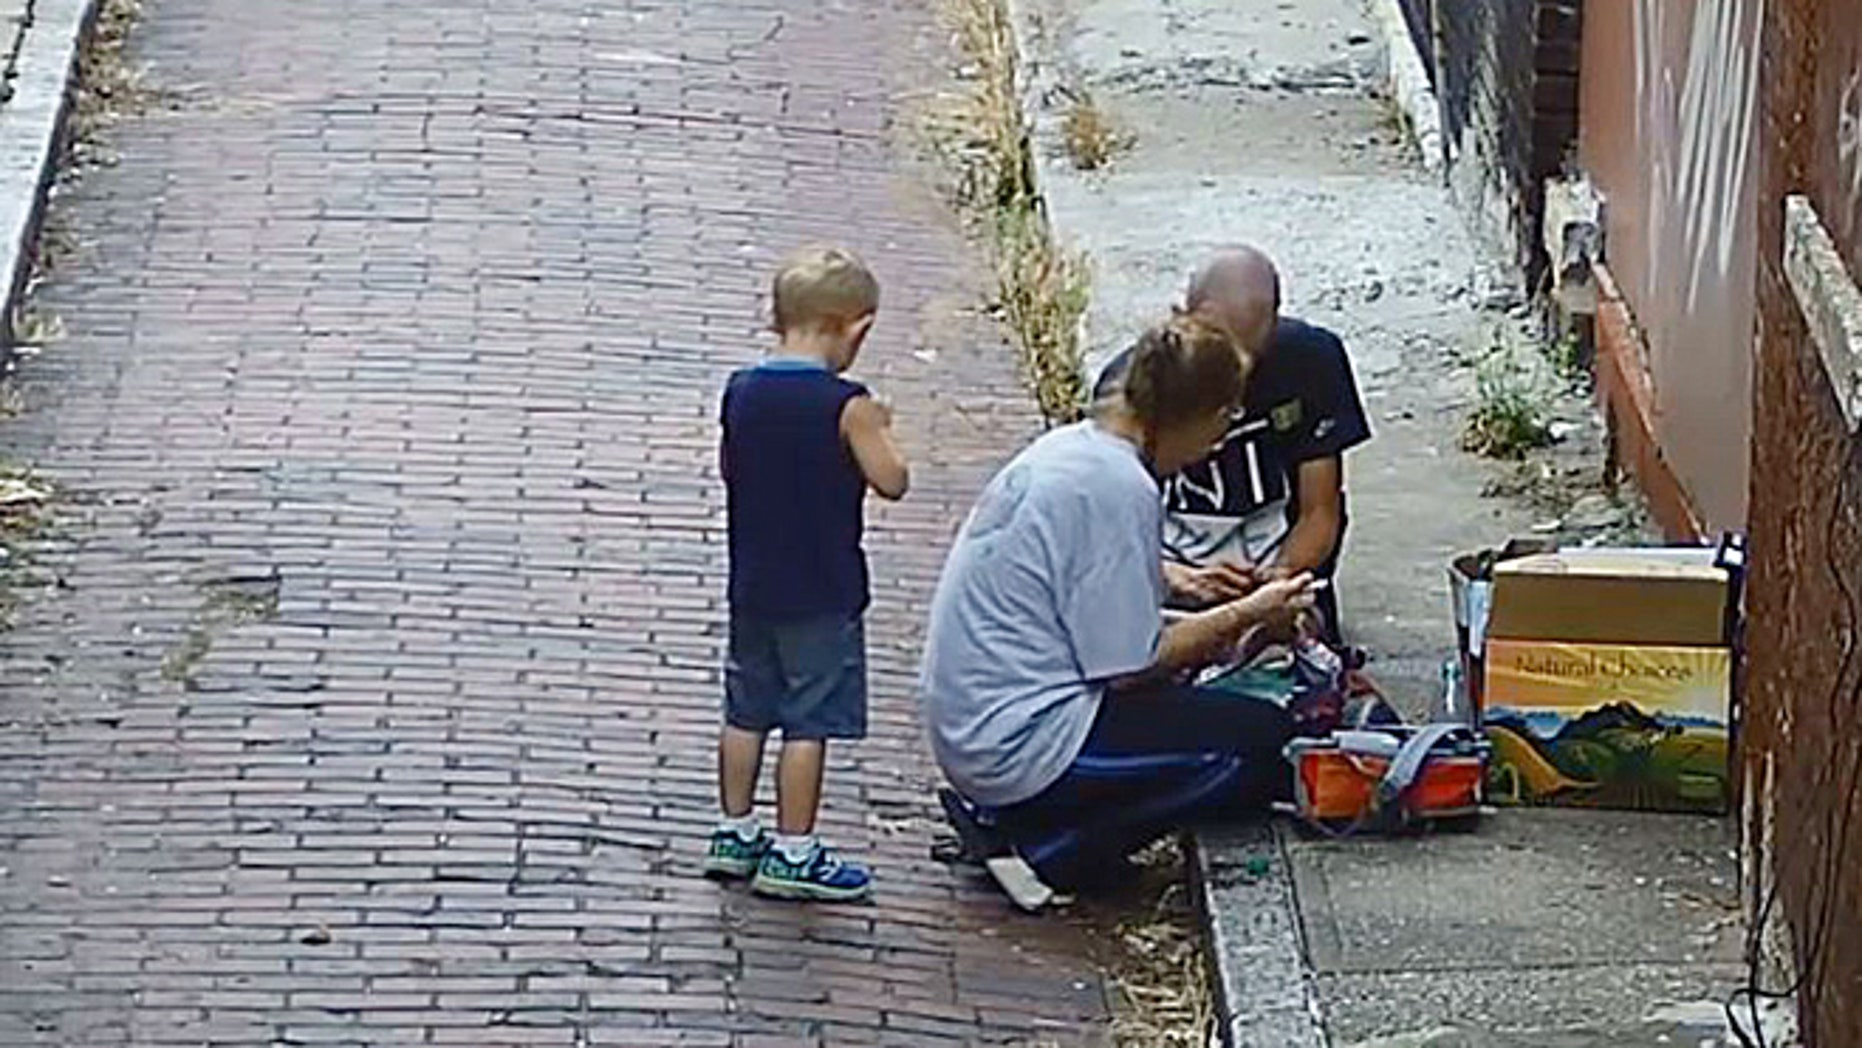 Image from surveillance video that cops say shows a mom shooting up in front of her 4-year-old son.